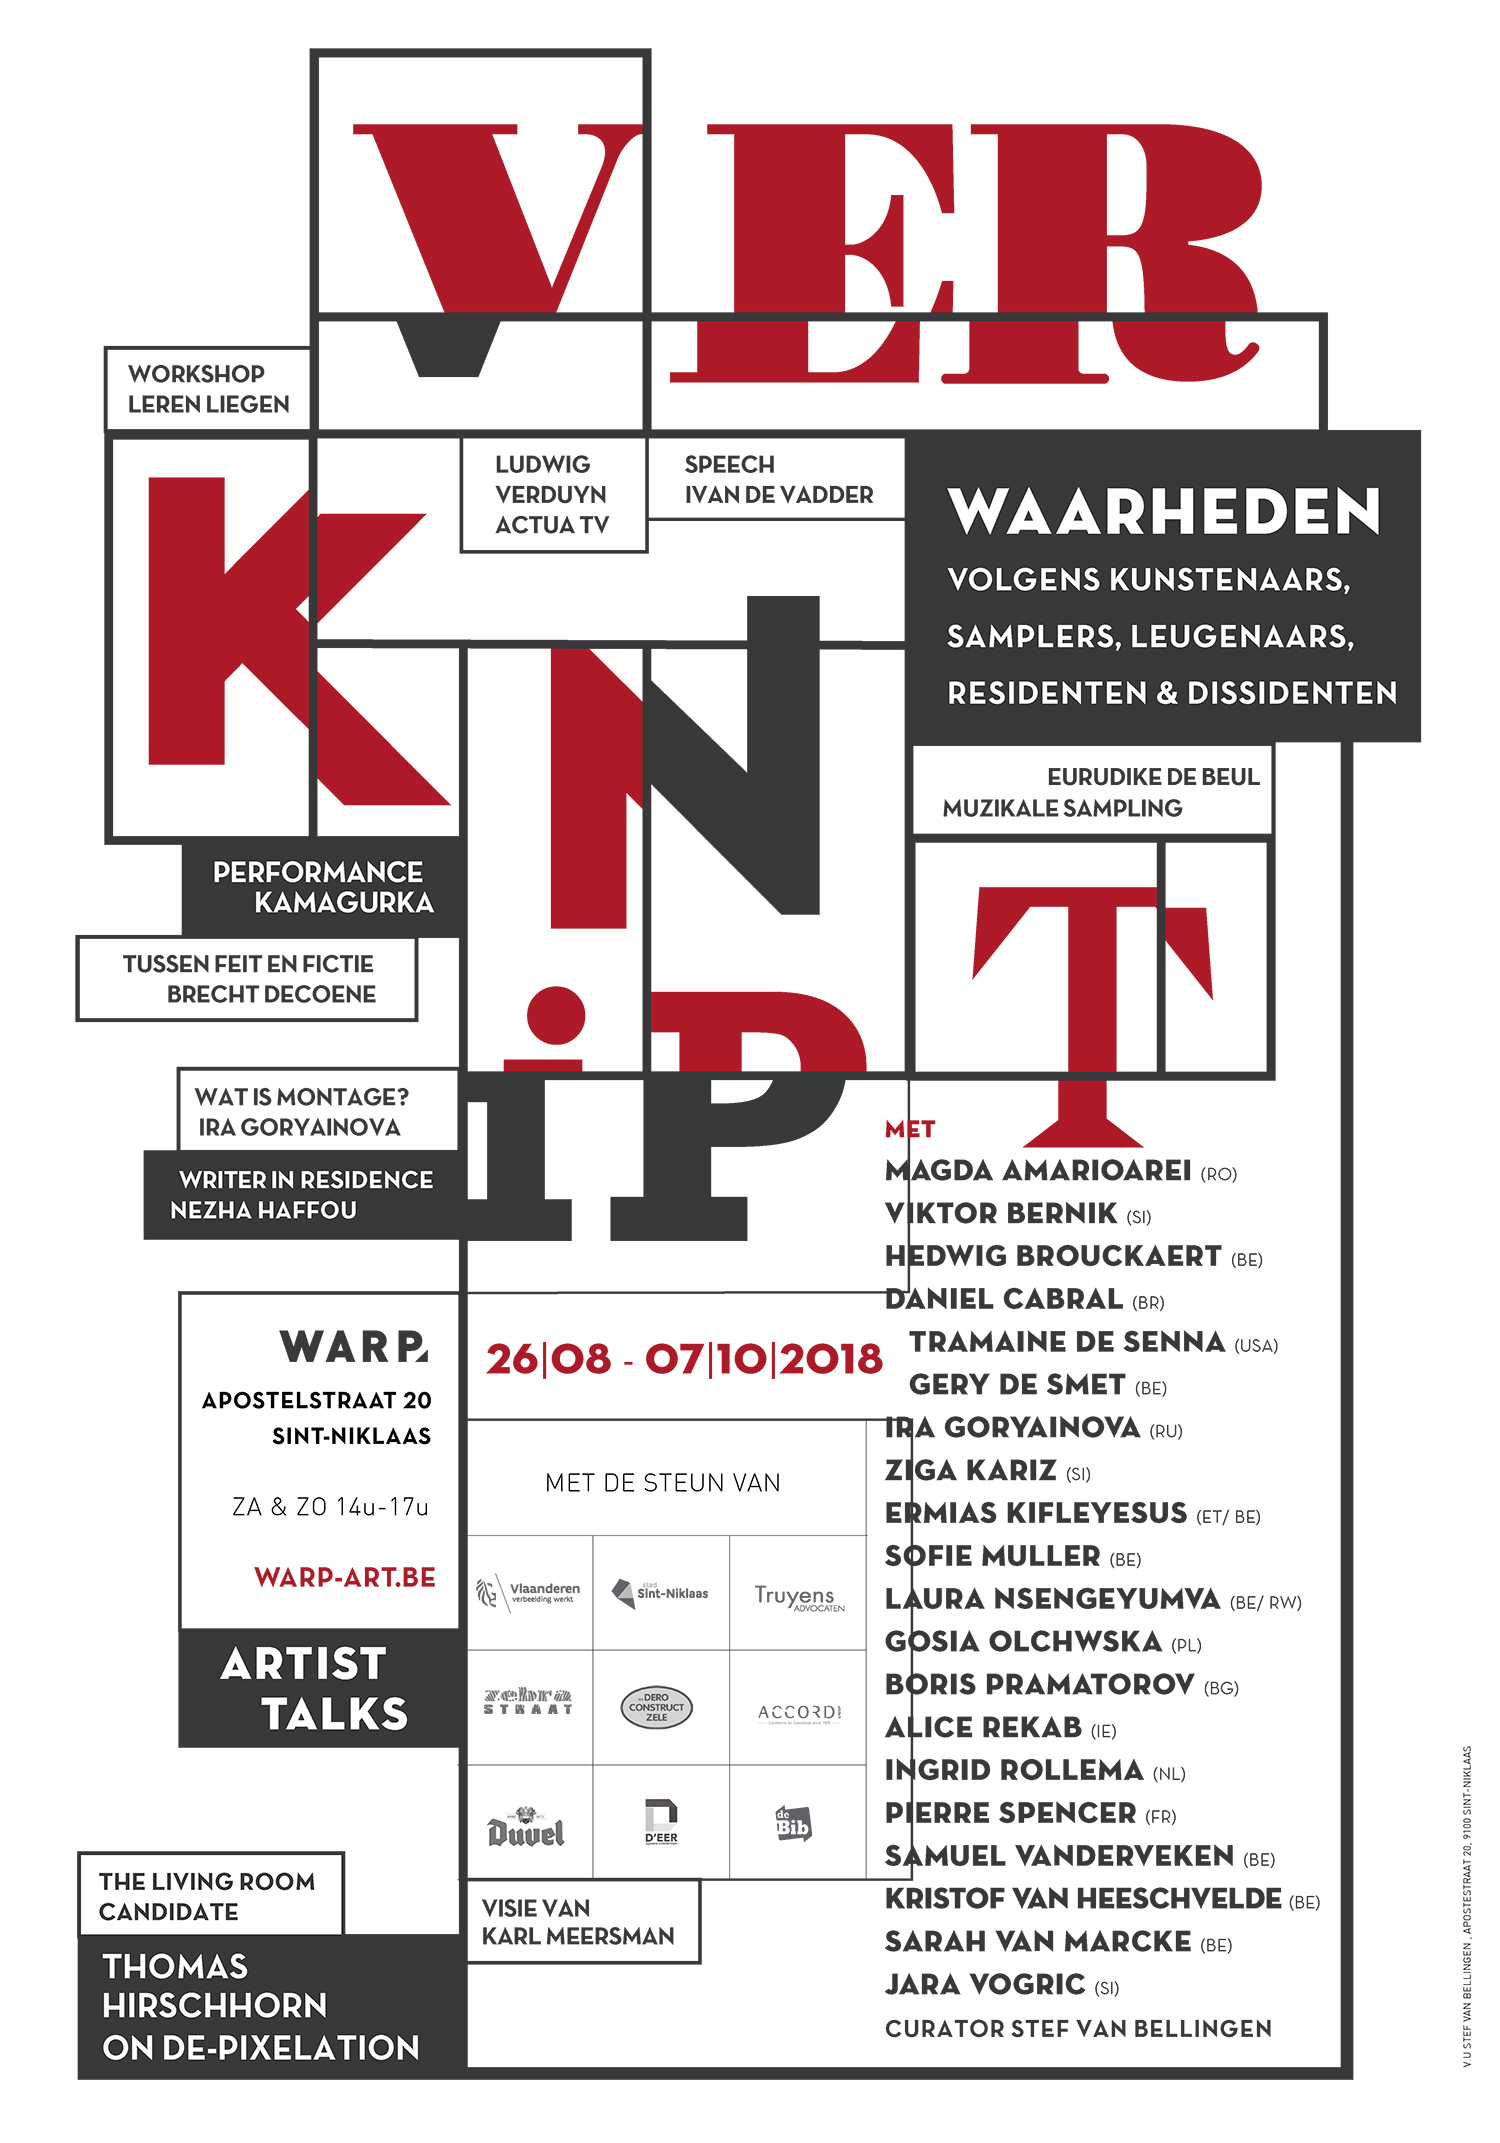 Invited to make a piece for the groups expo 'Verknipt' at Warp